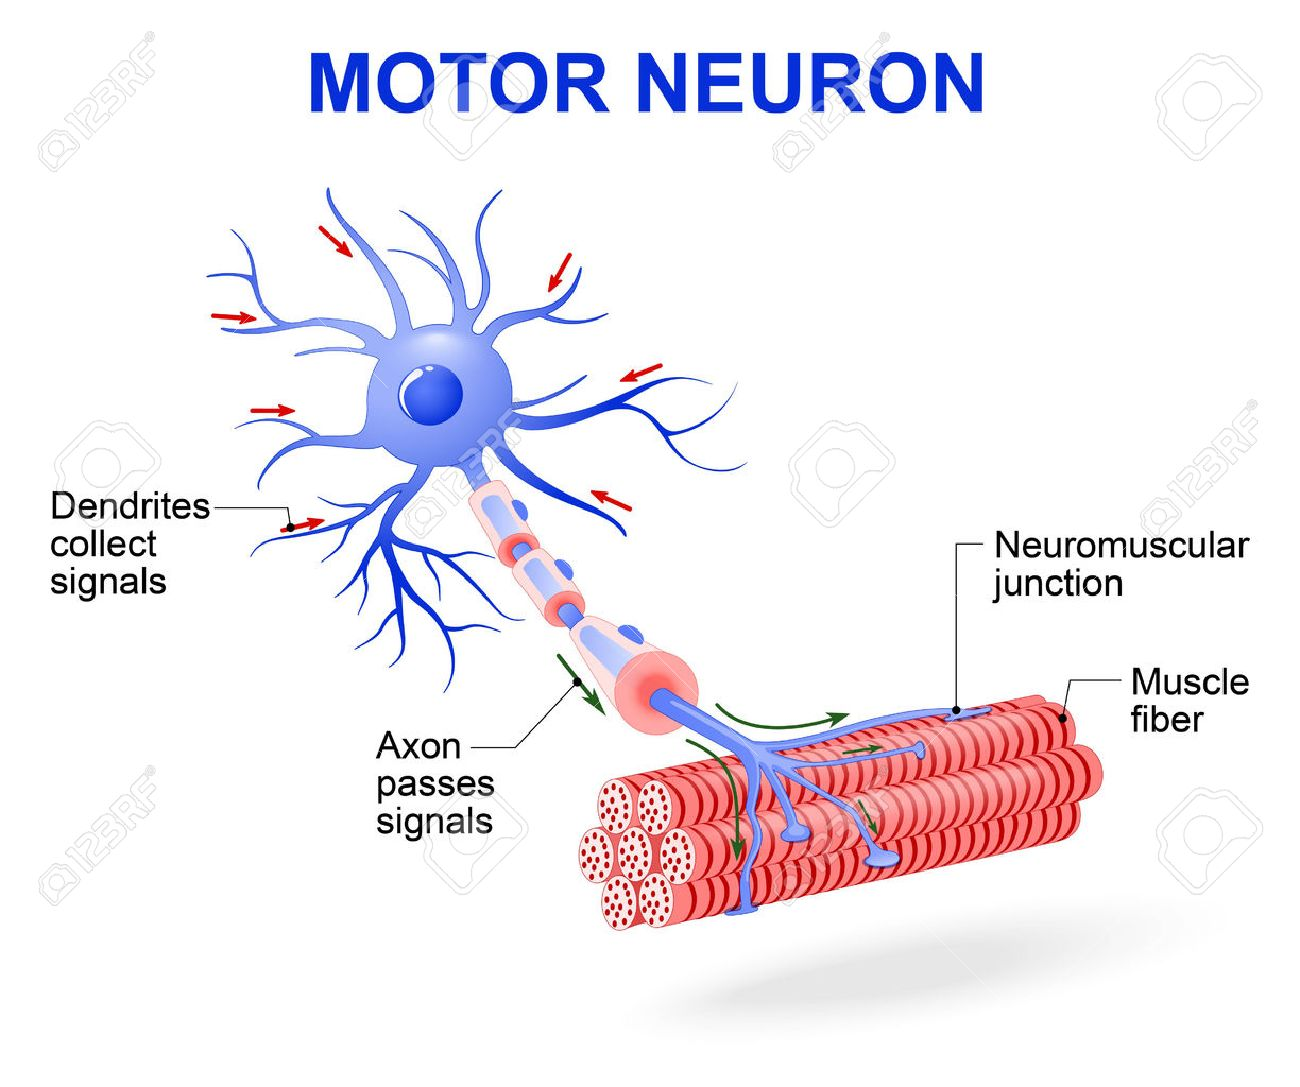 hight resolution of structure of motor neuron vector diagram include dendrites cell body with nucleus axon myelin sheath nodes of ranvier and motor end plates